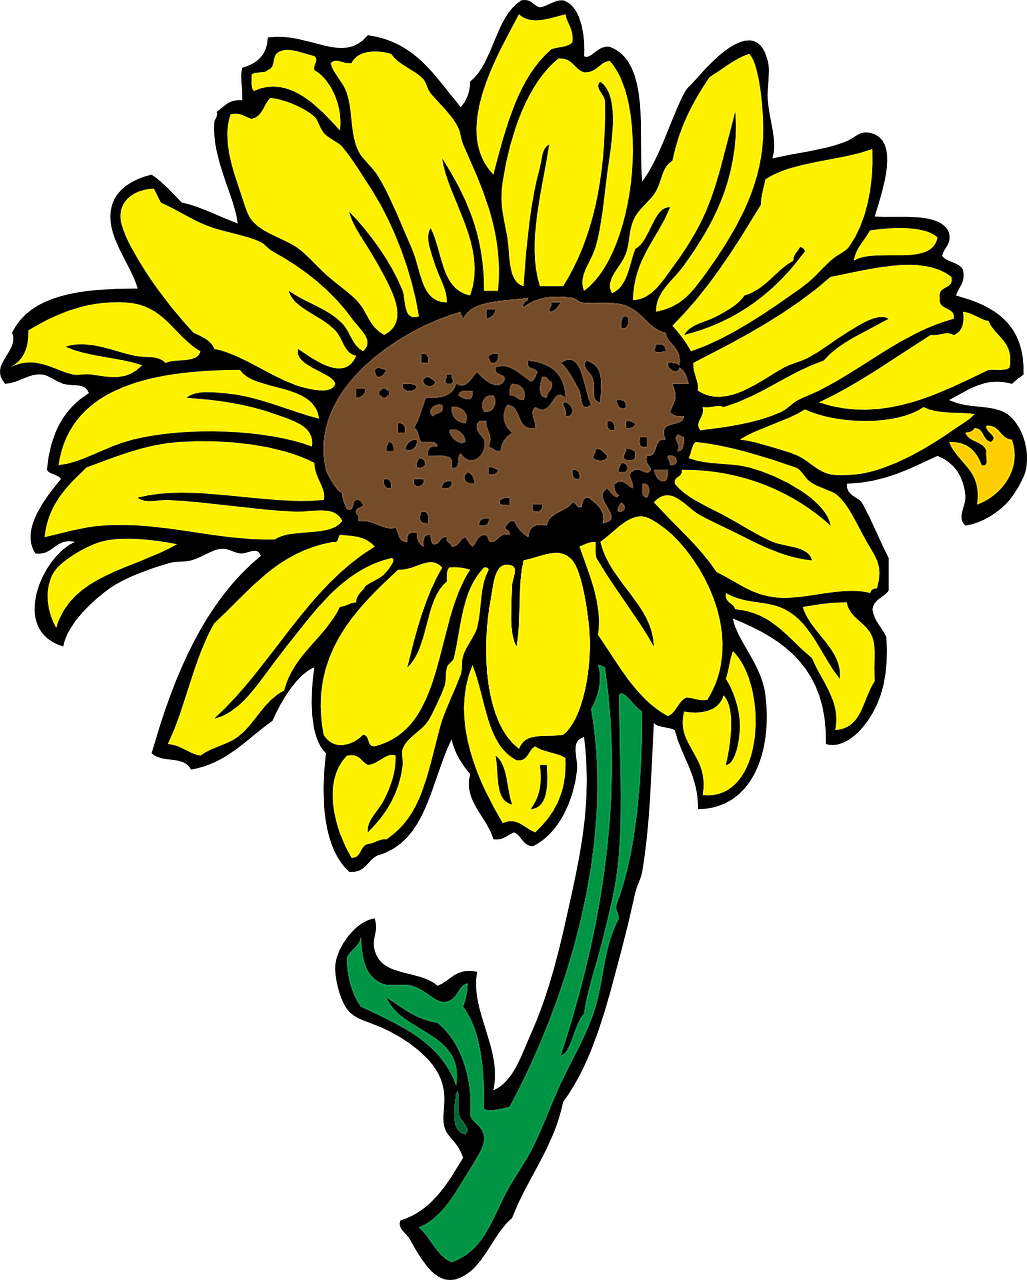 sun,flower,sunflower,yellow,blossom,free vector graphics,free pictures, free photos, free images, royalty free, free illustrations, public domain